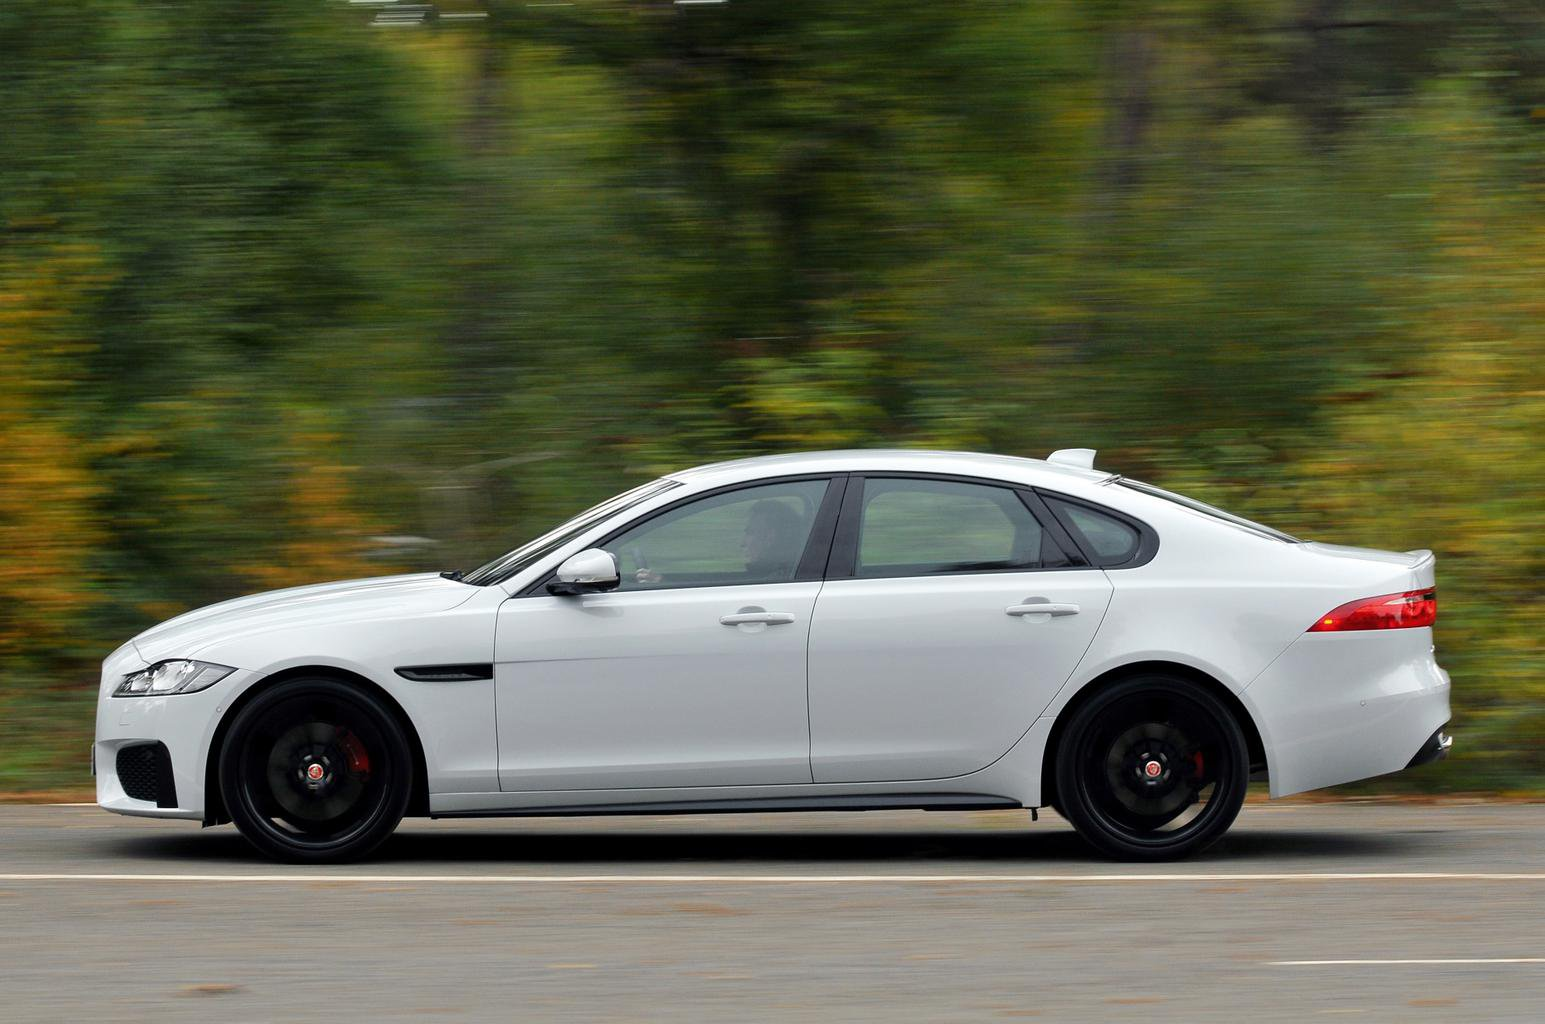 Jaguar XF vs Audi A7 Sportback vs BMW 5 Series